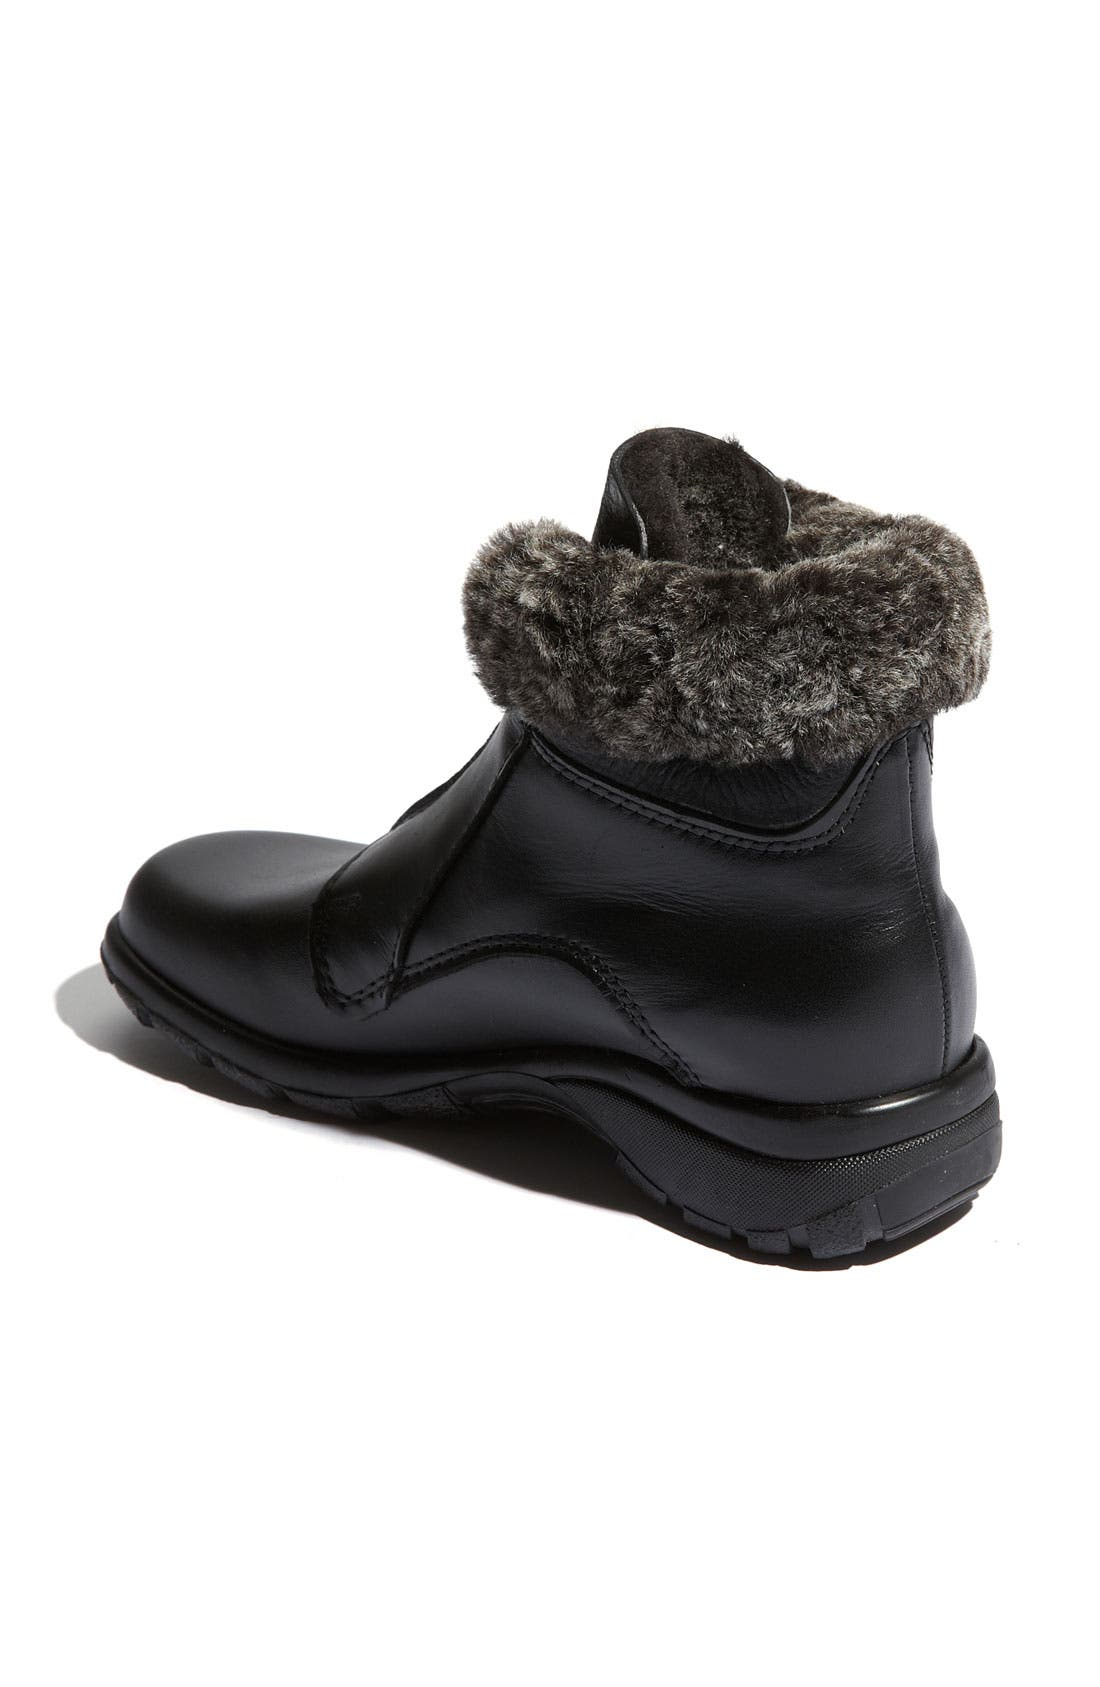 MARTINO,                             'Puppy' Waterproof Boot,                             Alternate thumbnail 2, color,                             001